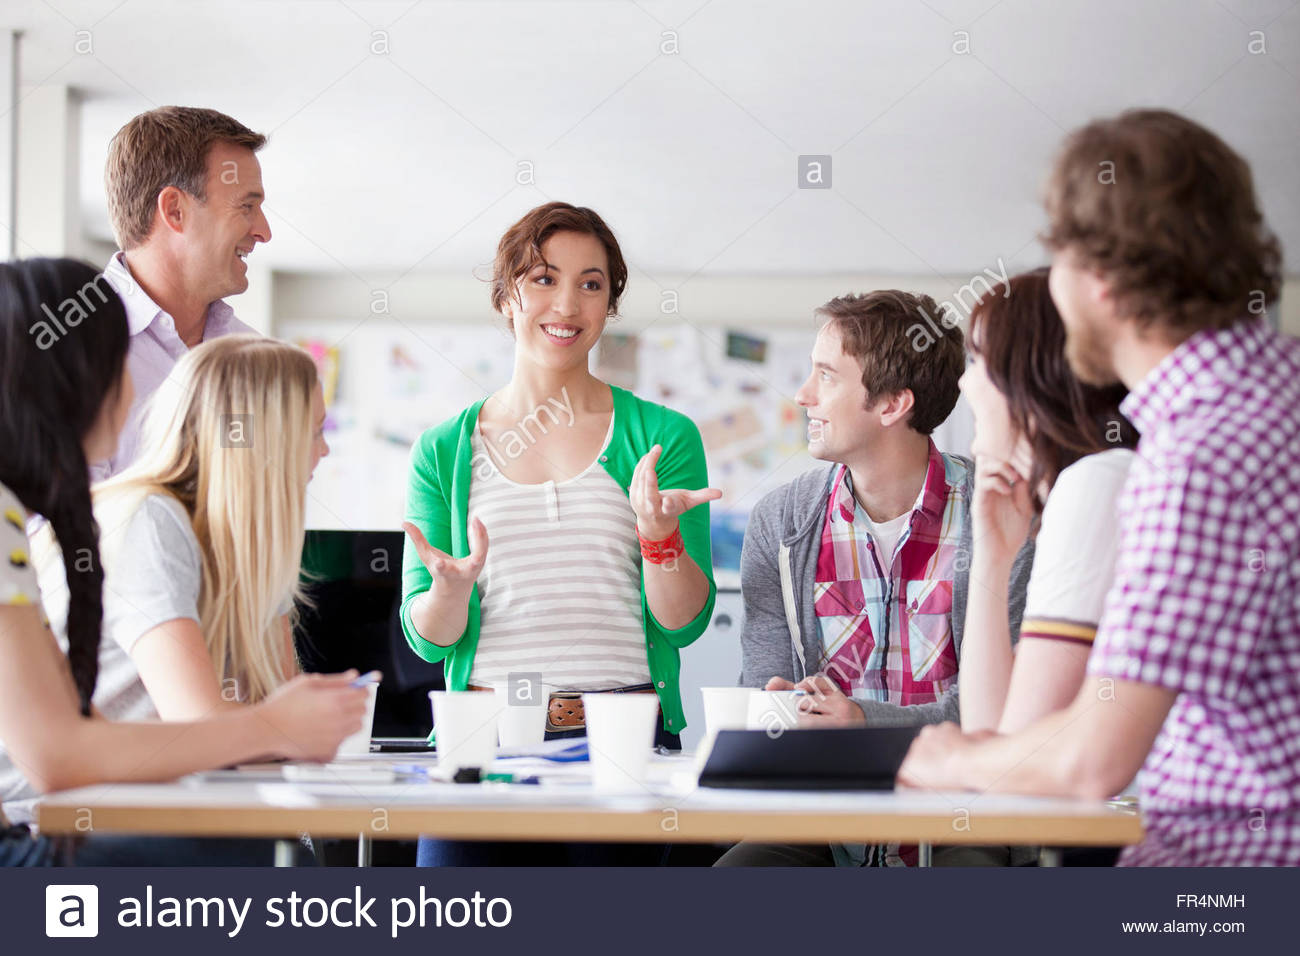 young creatives having a brainstorming session - Stock Image